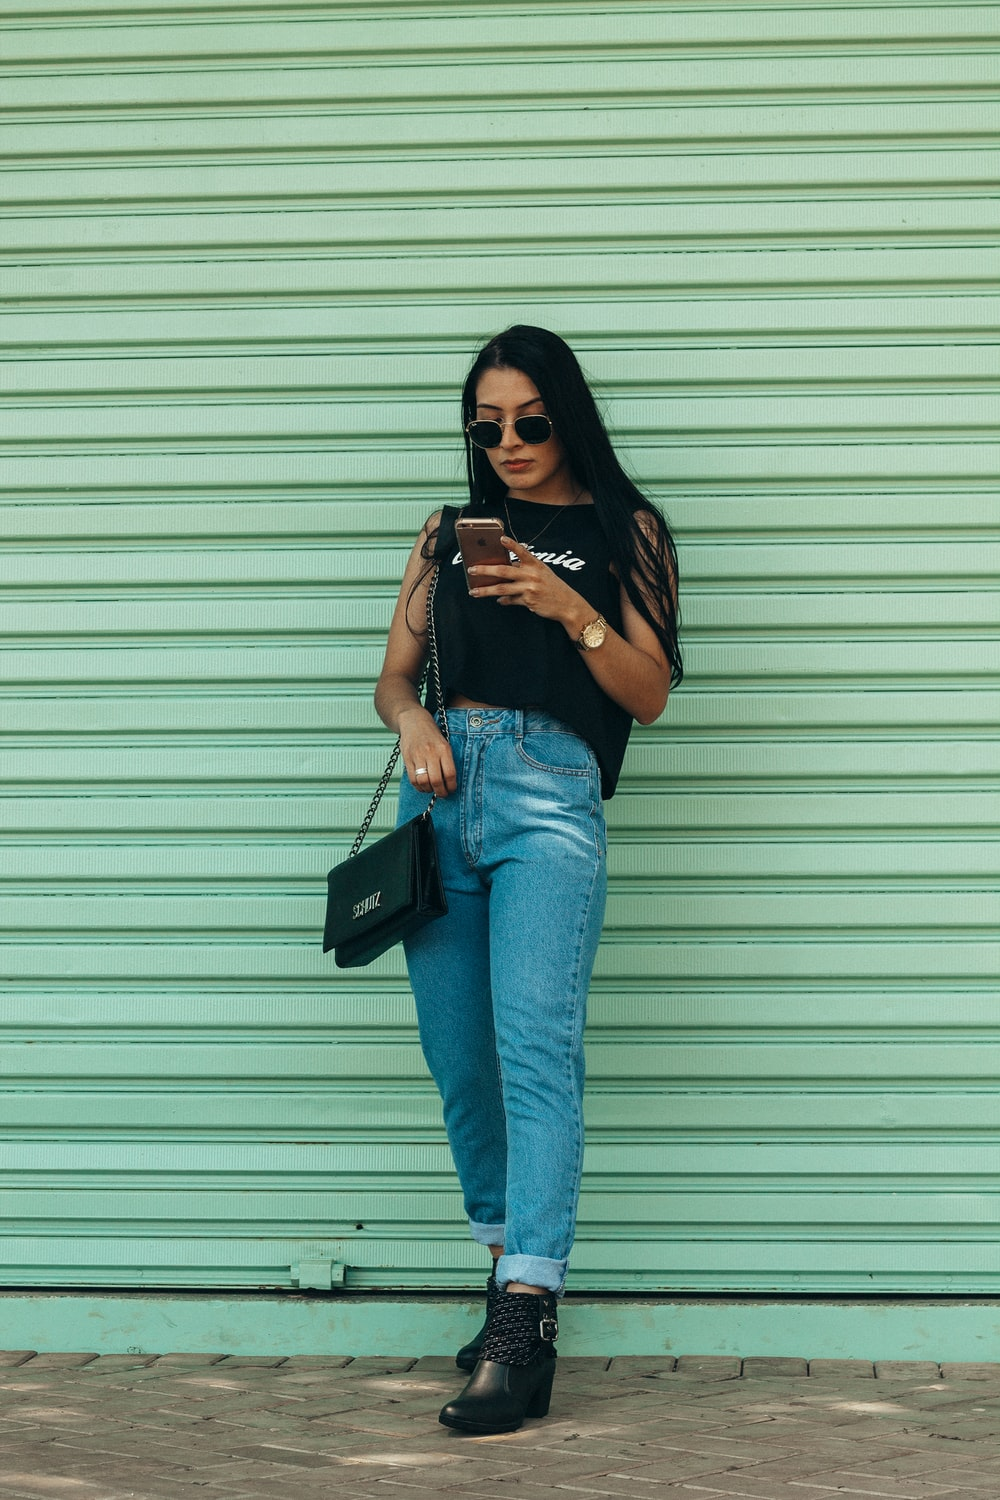 woman in black sleeveless top holding smartphone outdoors